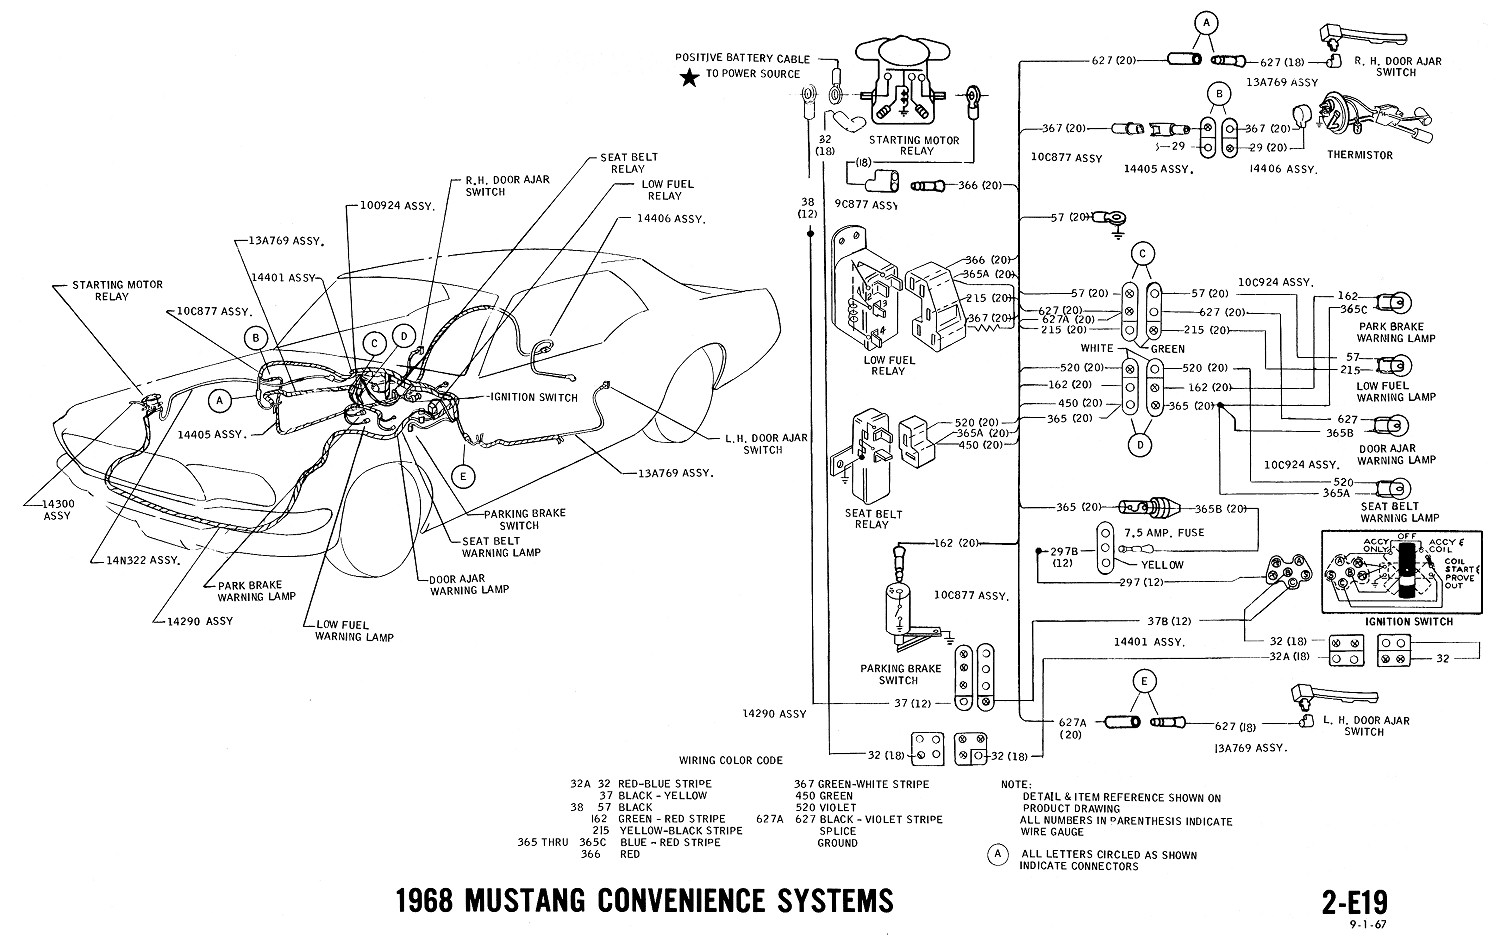 E19 1968 mustang wiring diagrams evolving software 1965 mustang heater wiring diagram at cos-gaming.co